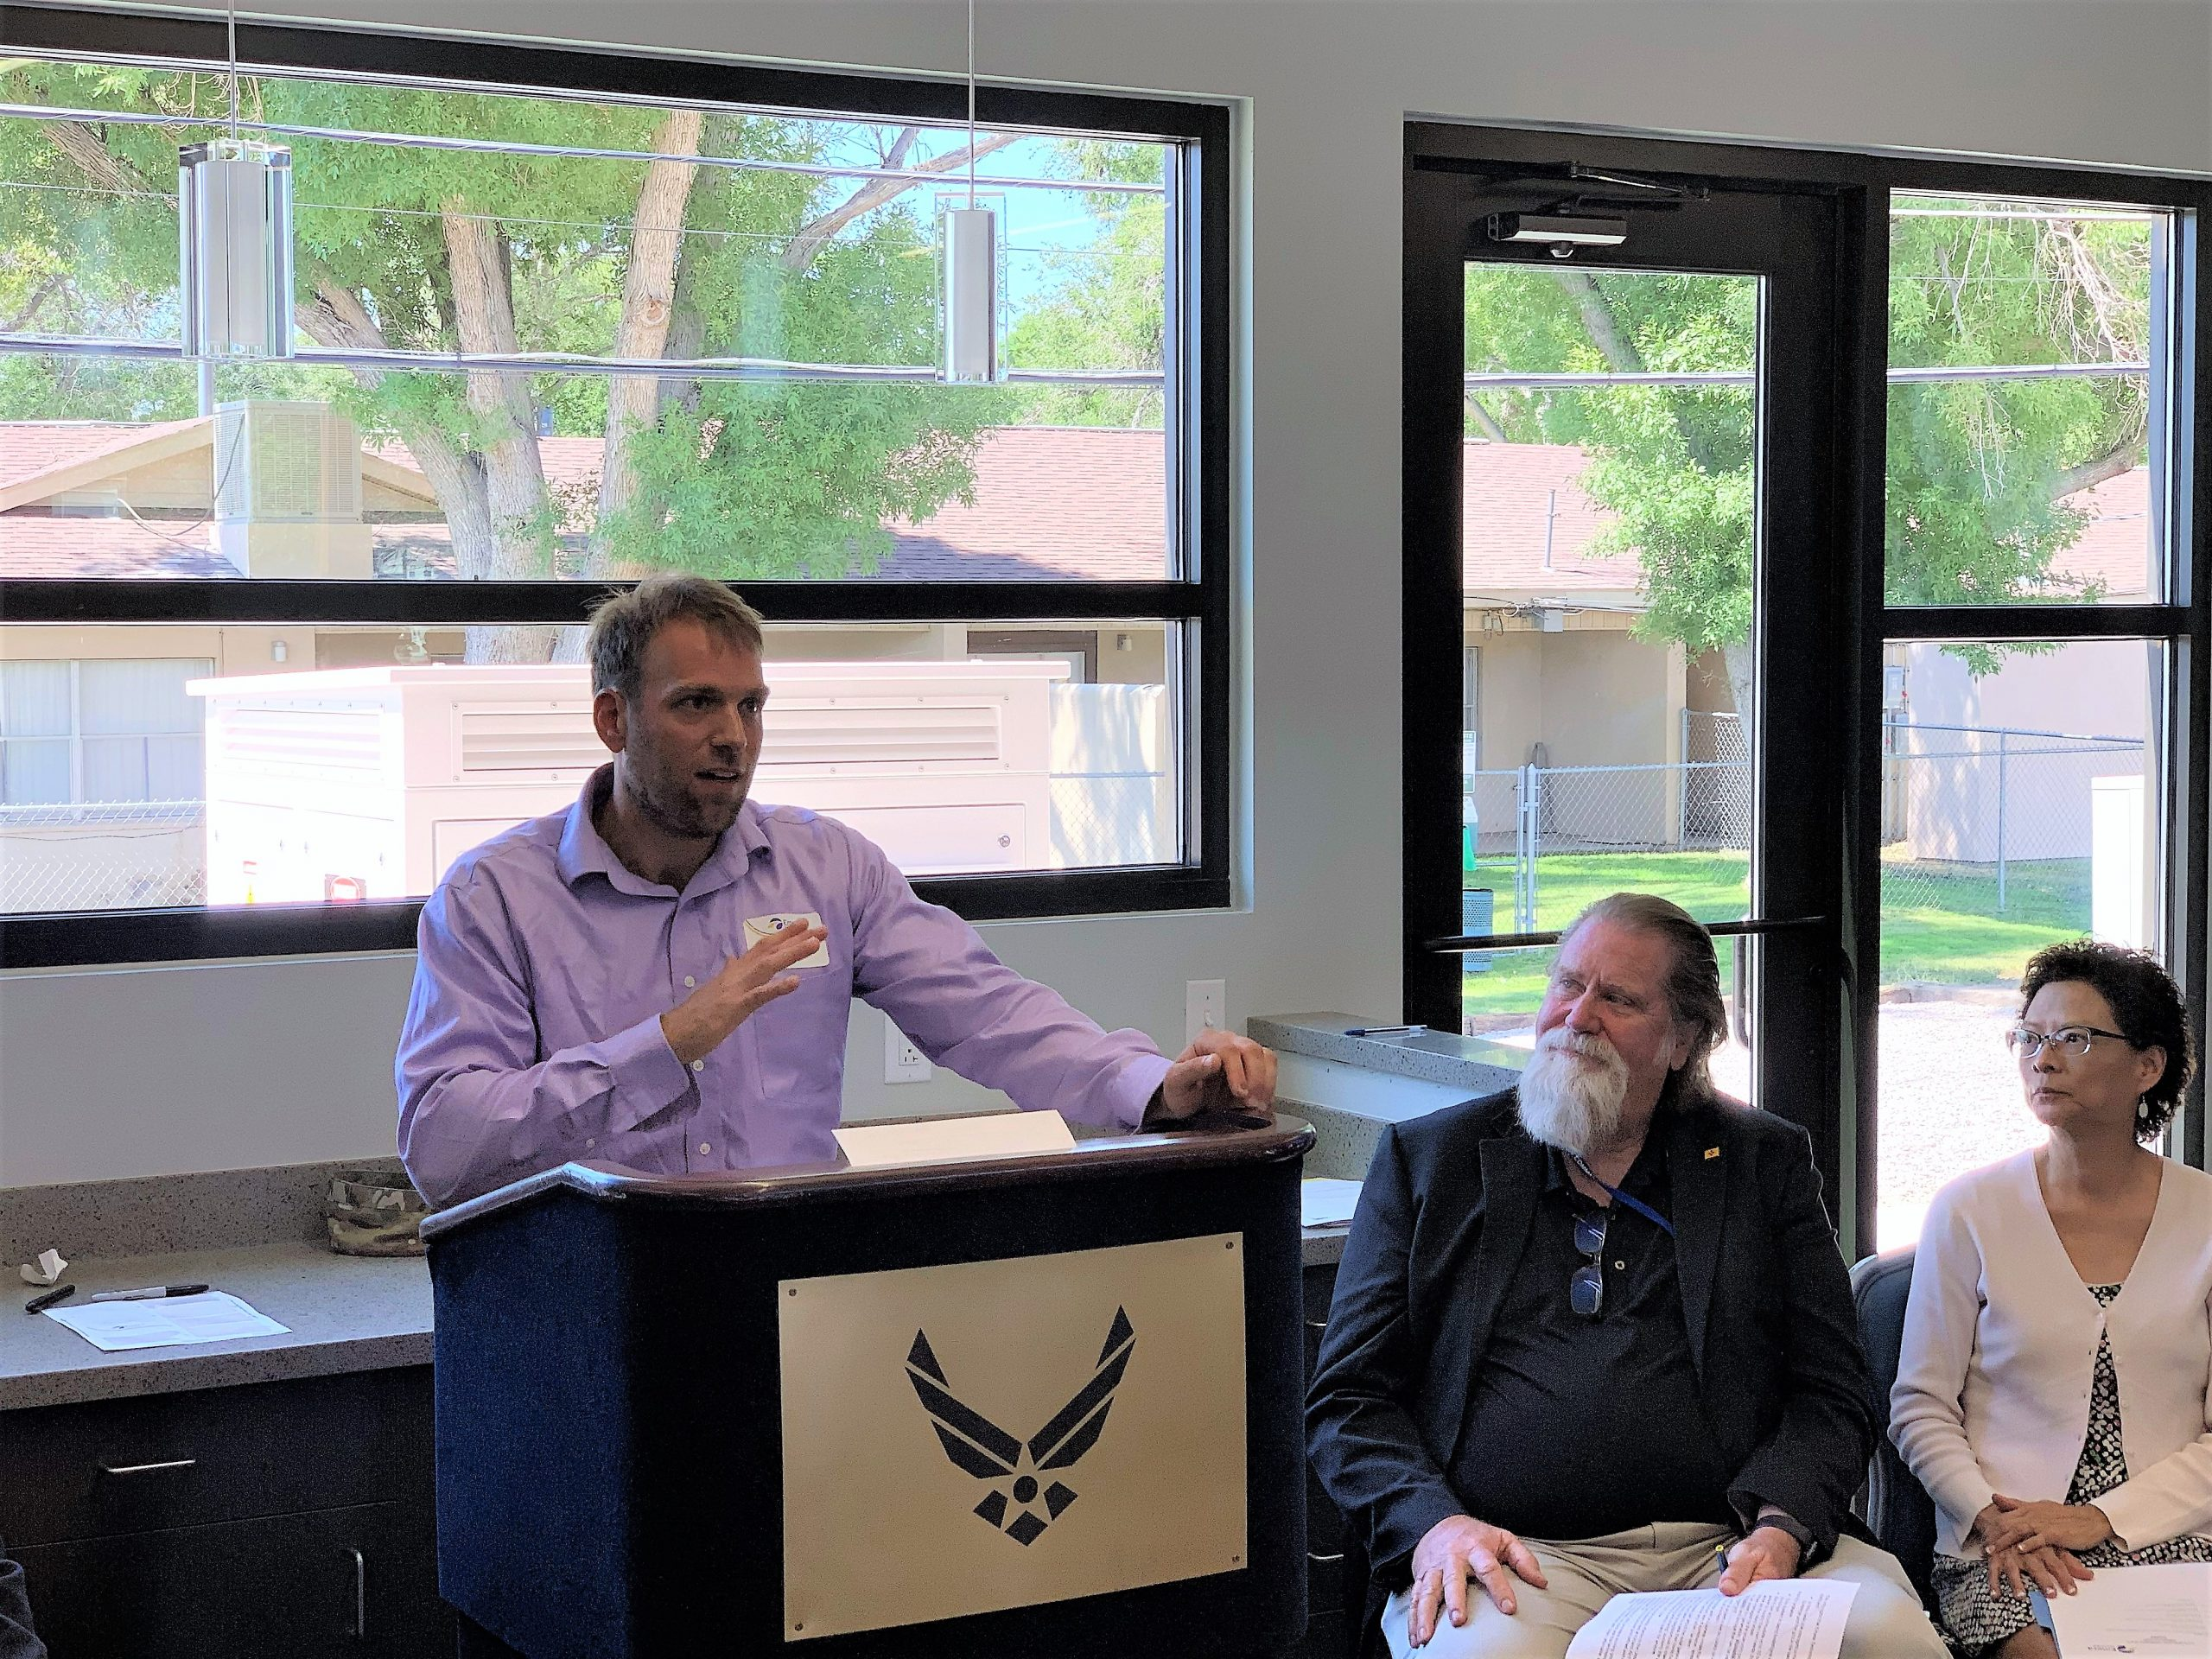 DC Microgrid PI Jack Flicker discusses Sandia and Emera's project and advantages of creating self-sustaining microgrids during the ribbon cutting for Phase one of the project at the new KAFB community center near the Base's temporary housing units. (Photo by Dan Ware)